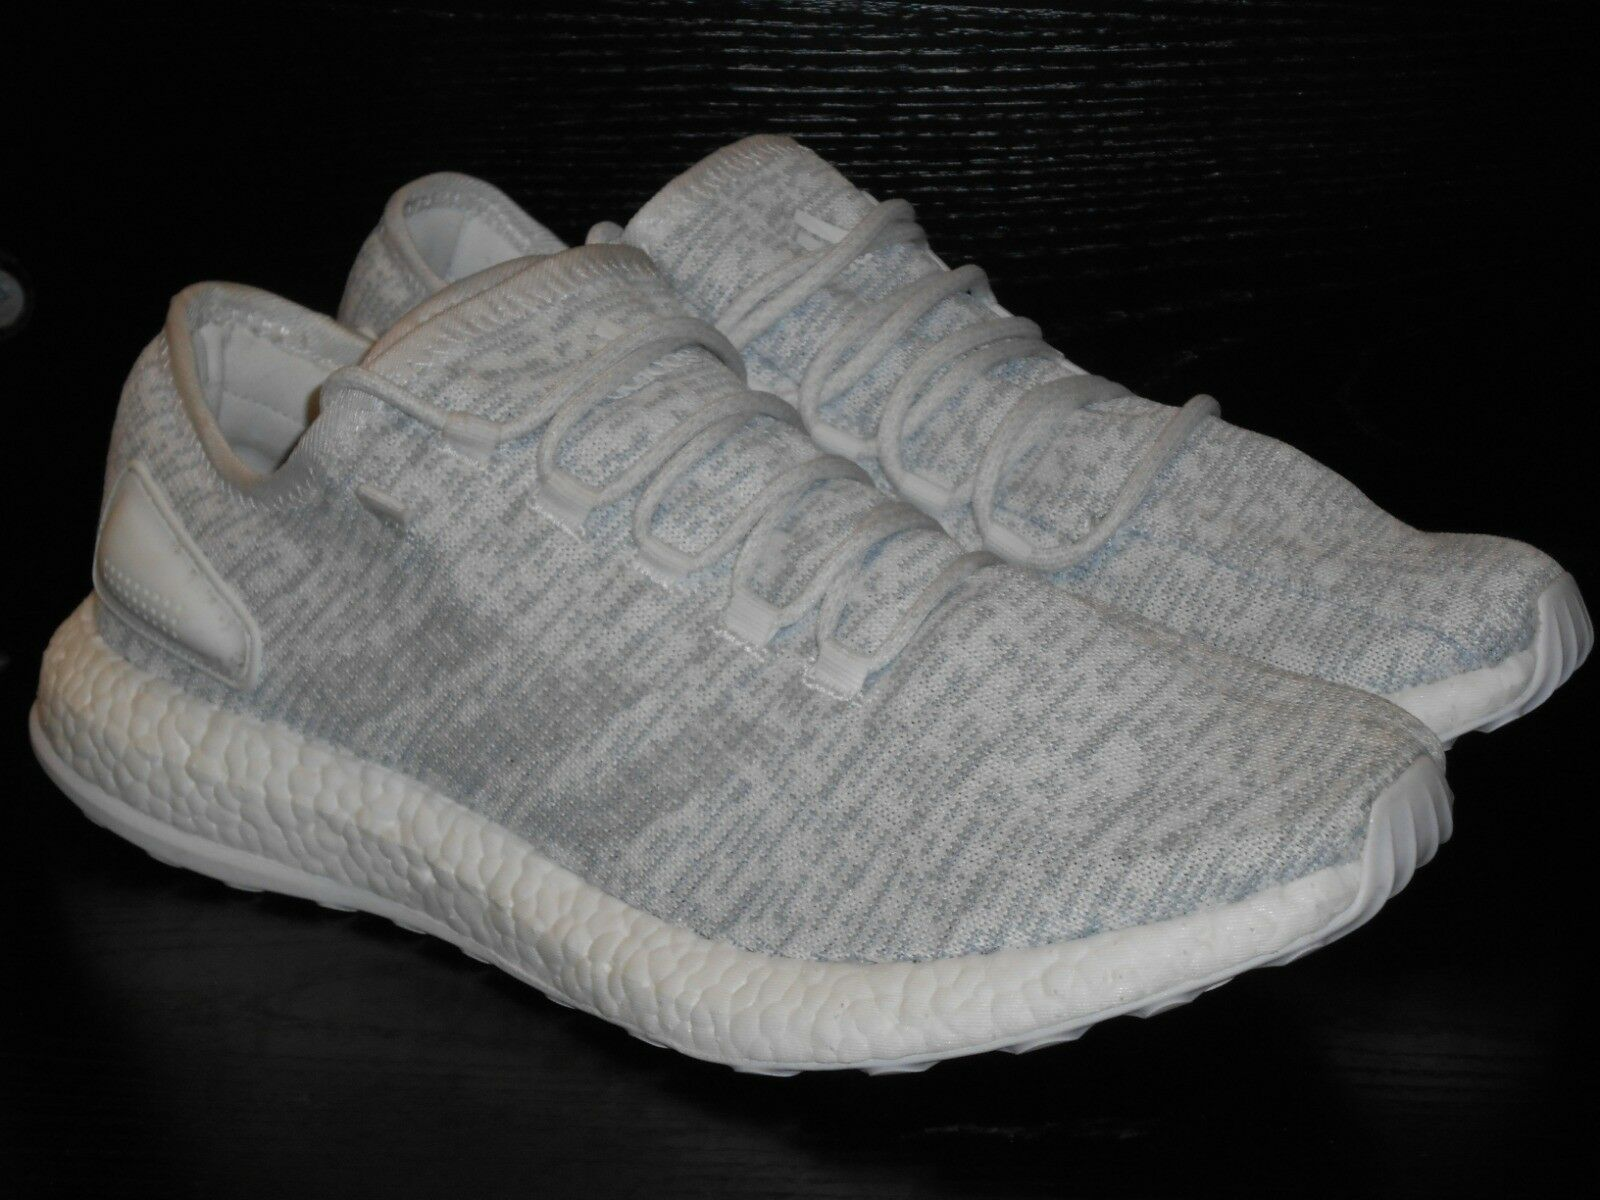 adidas PureBOOST Mens Trainer Shoe Size 11.5 Grey White RRP £95/-